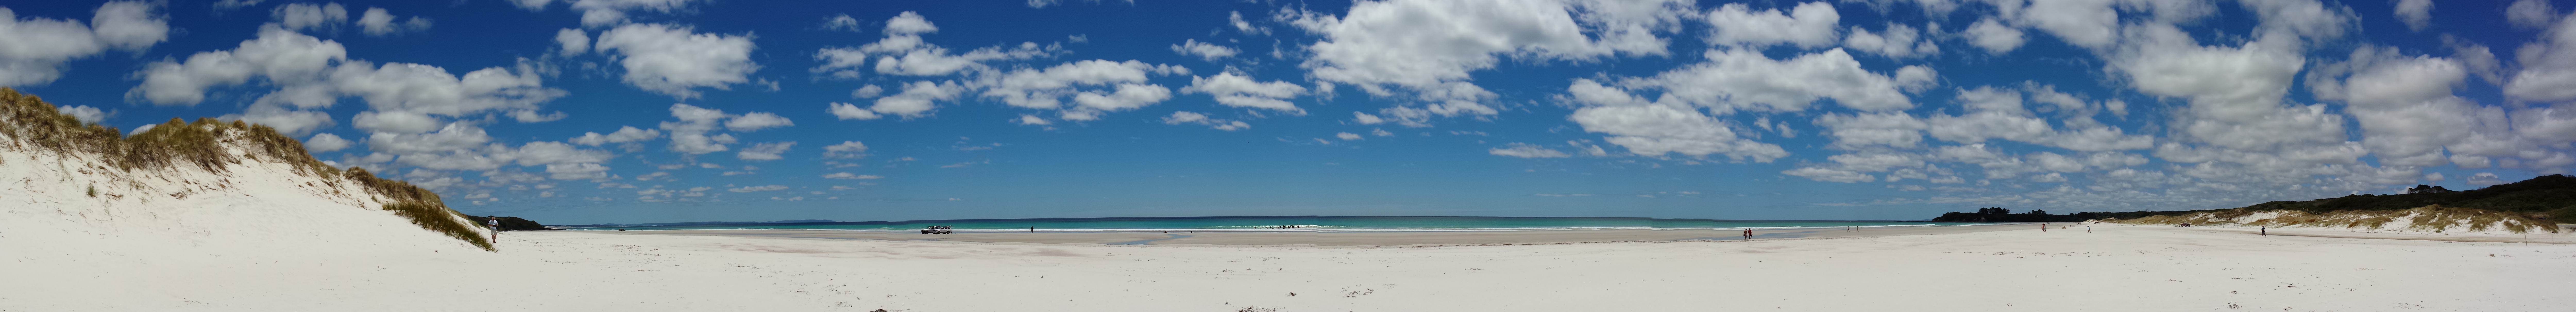 White, sandy beach. Clear blue sky.